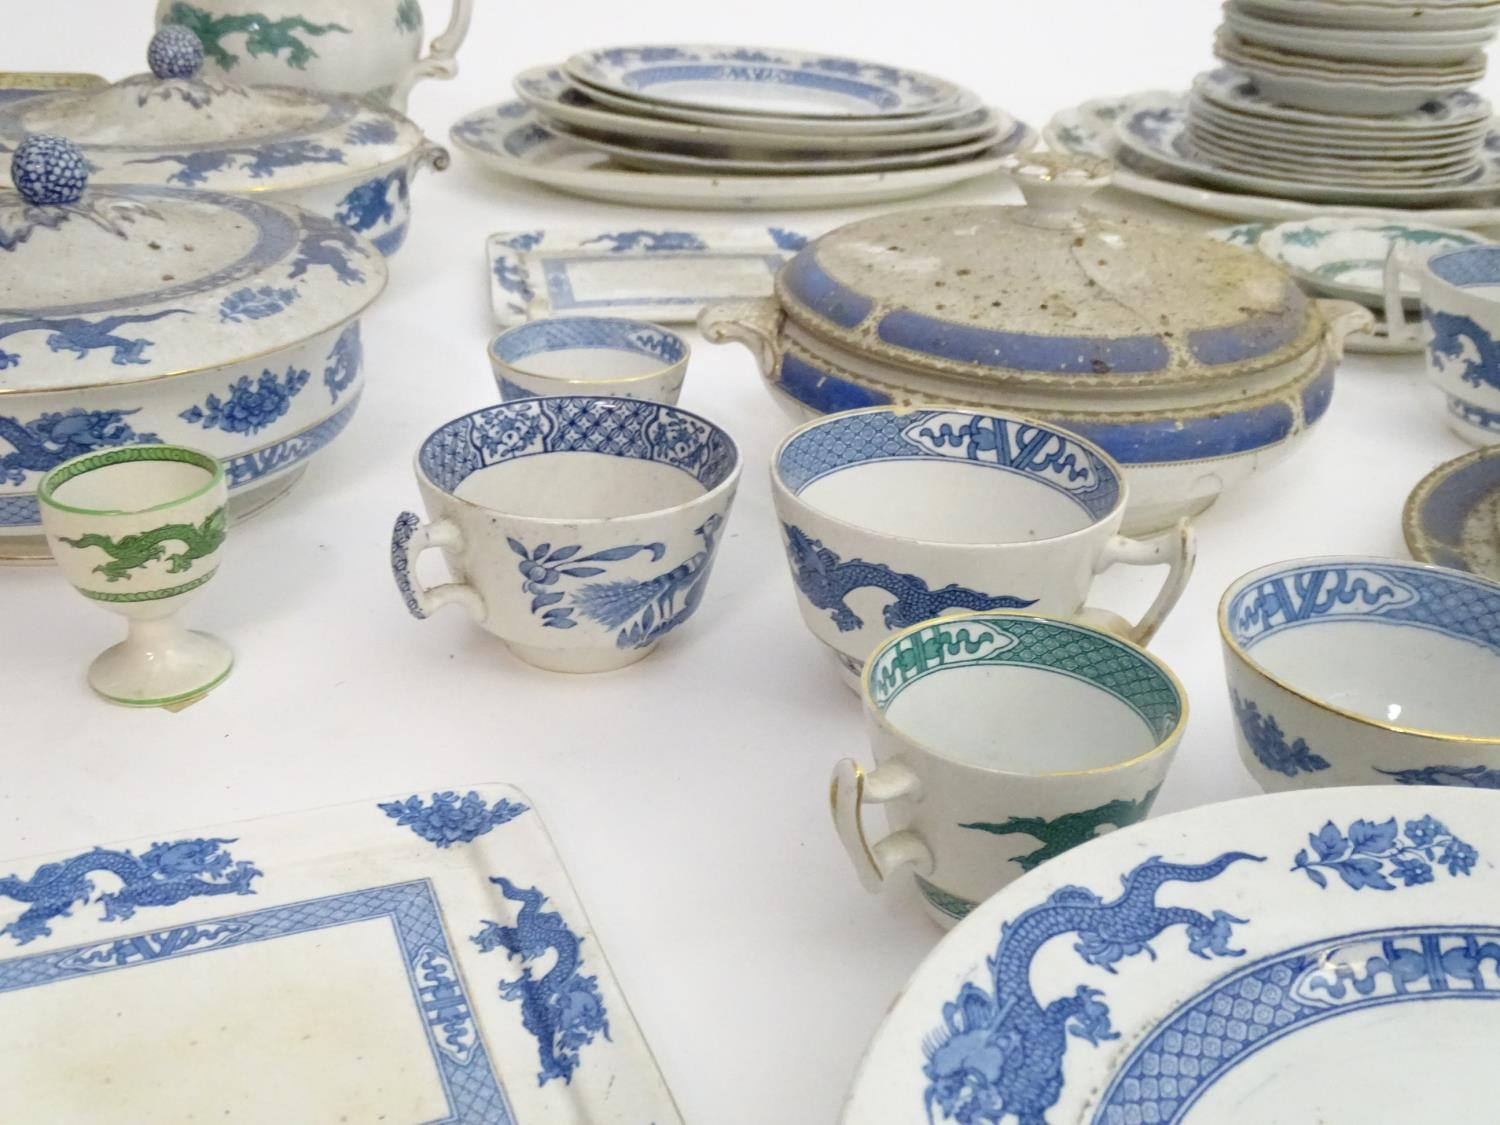 A large quantity of assorted Booths china to include teapots, plates, tureens, jugs, serving dishes, - Image 10 of 17